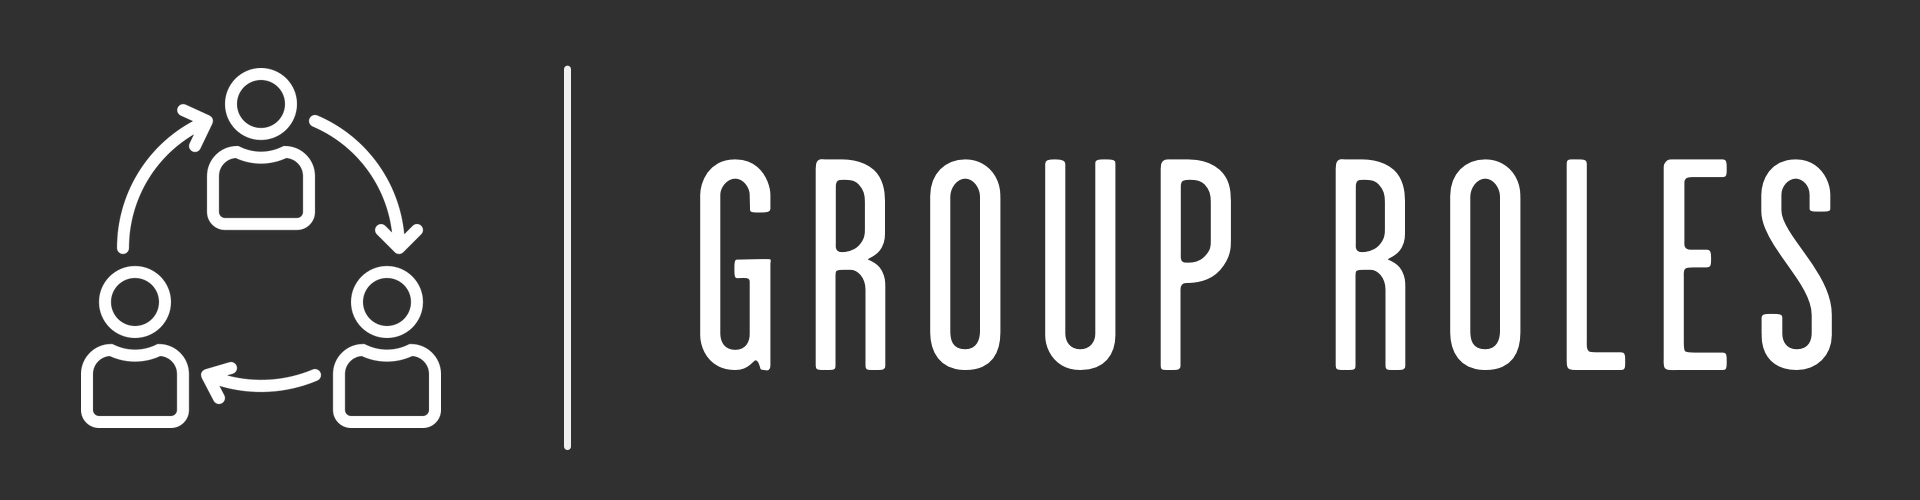 header - group roles.jpg